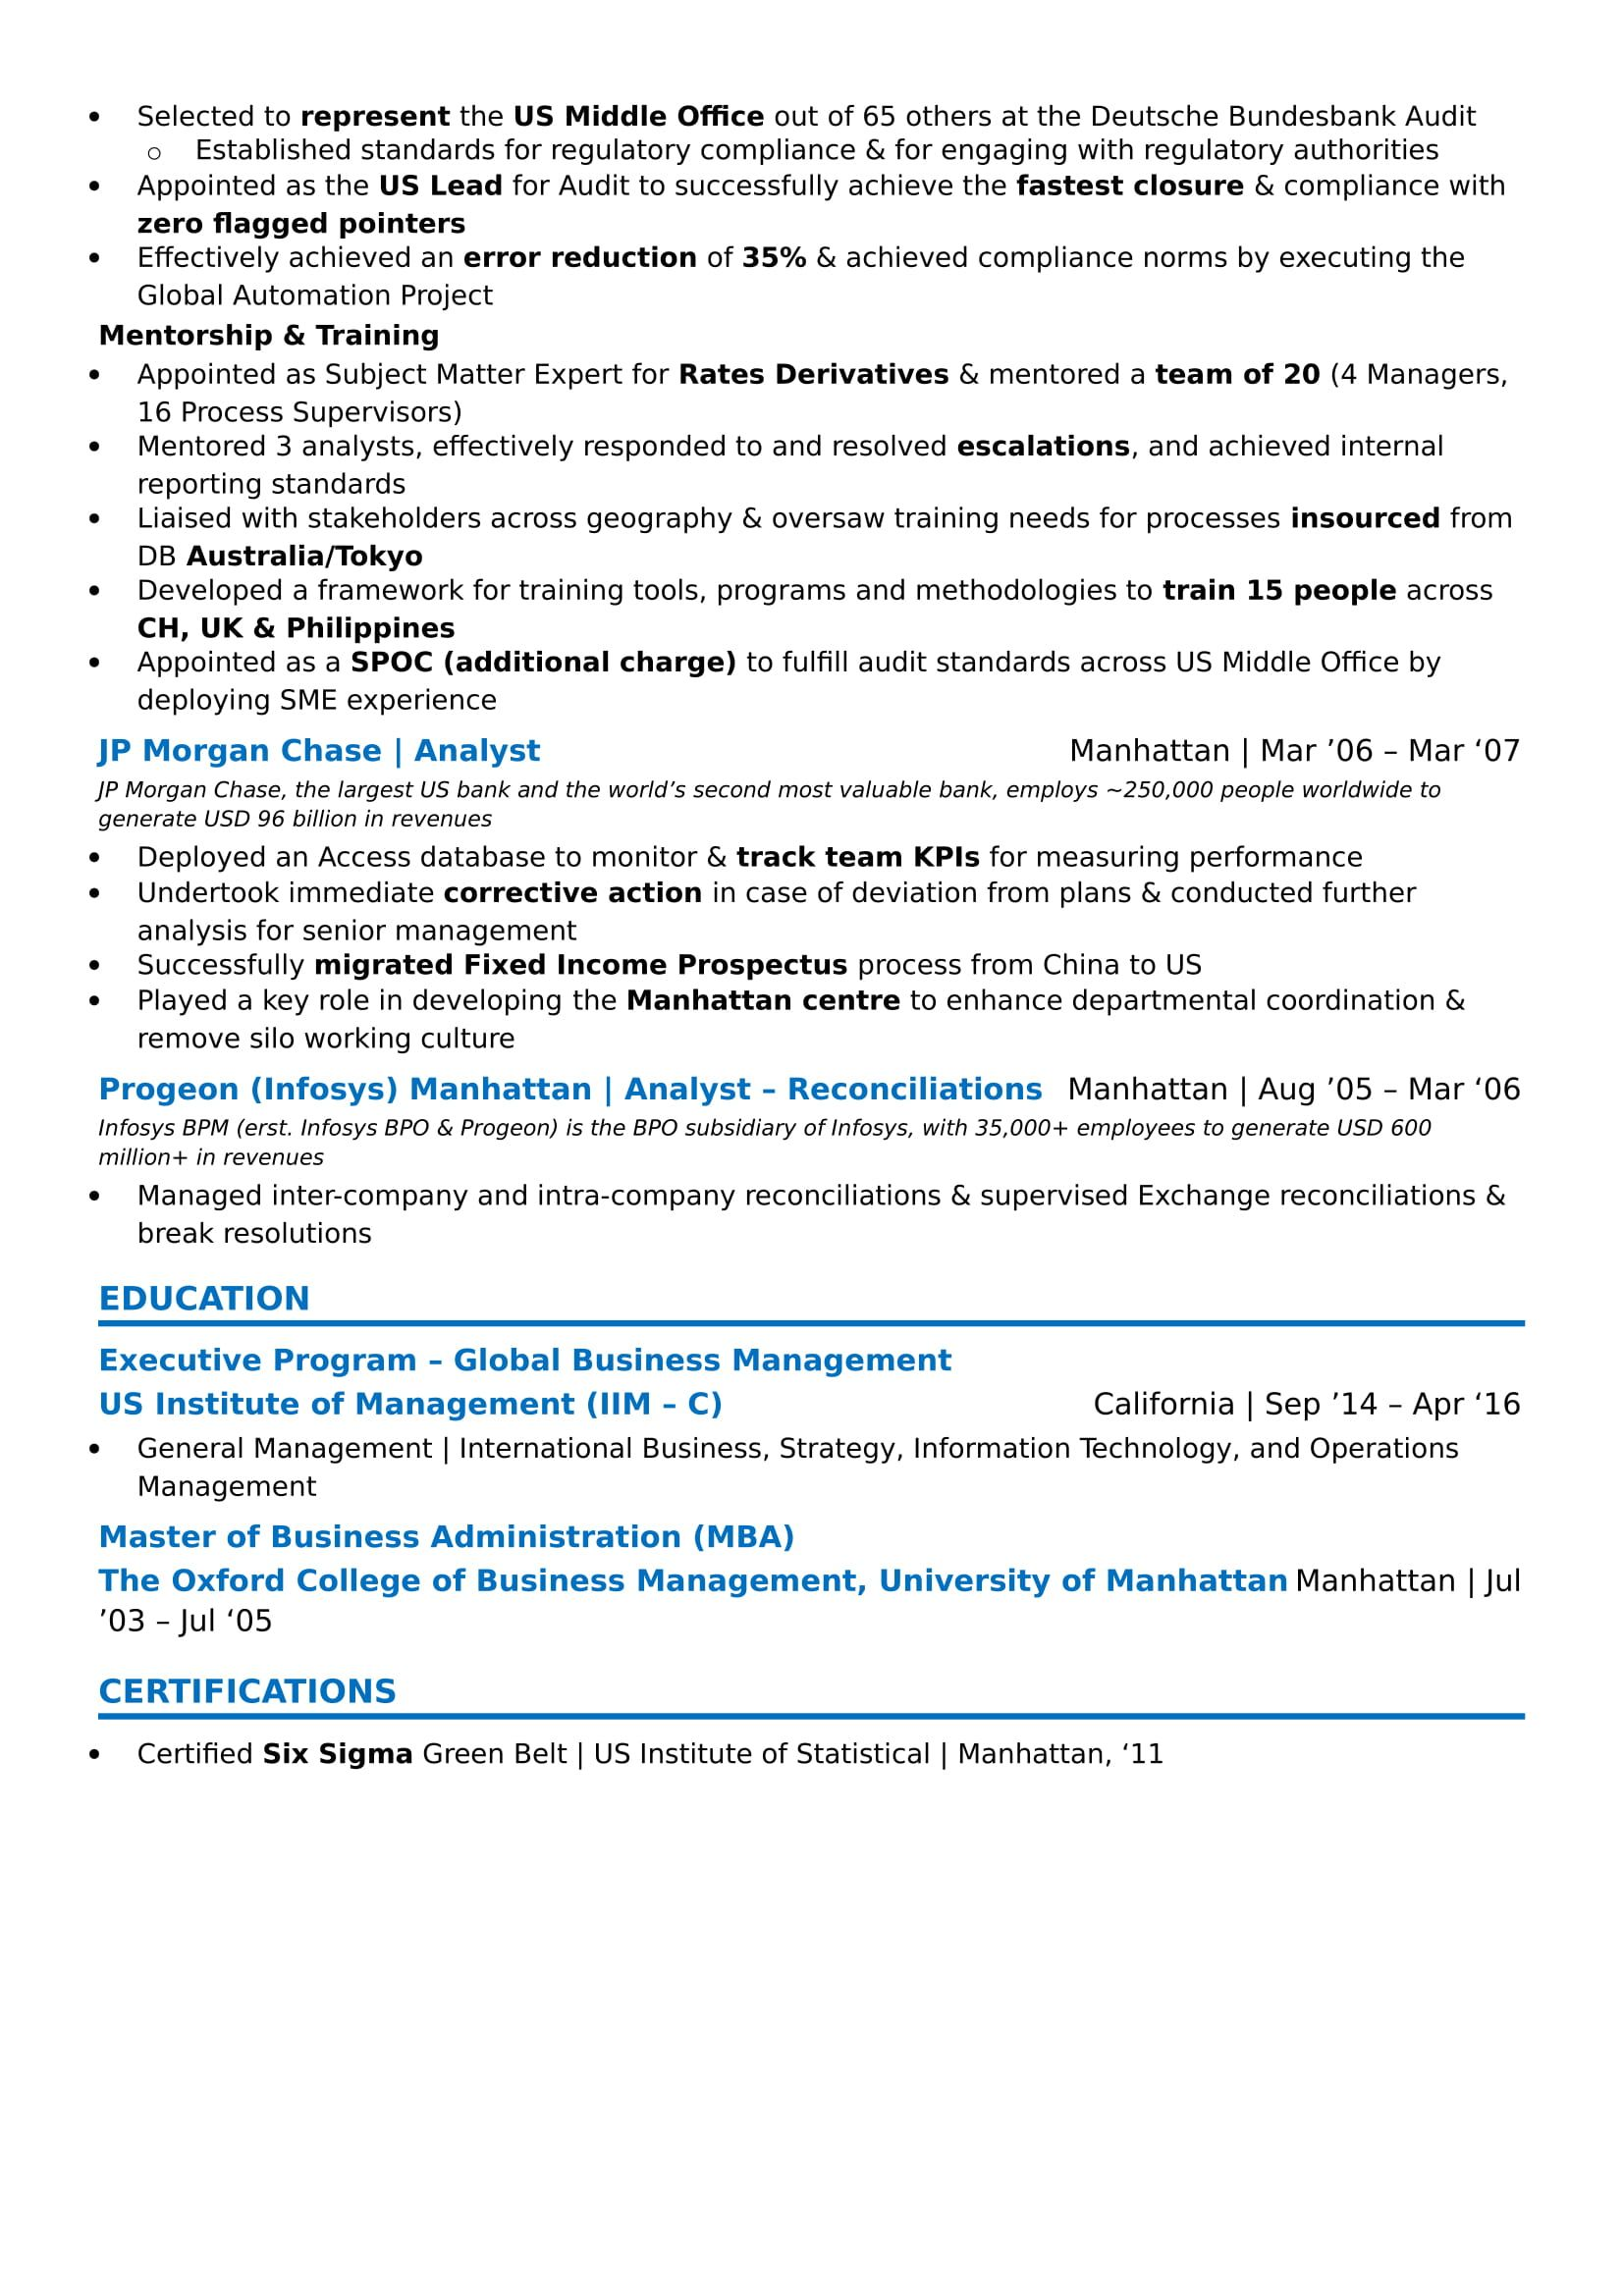 career change resume guide to for objective transition hiration rohit mahagaonkar cv Resume Resume Objective Transition Career